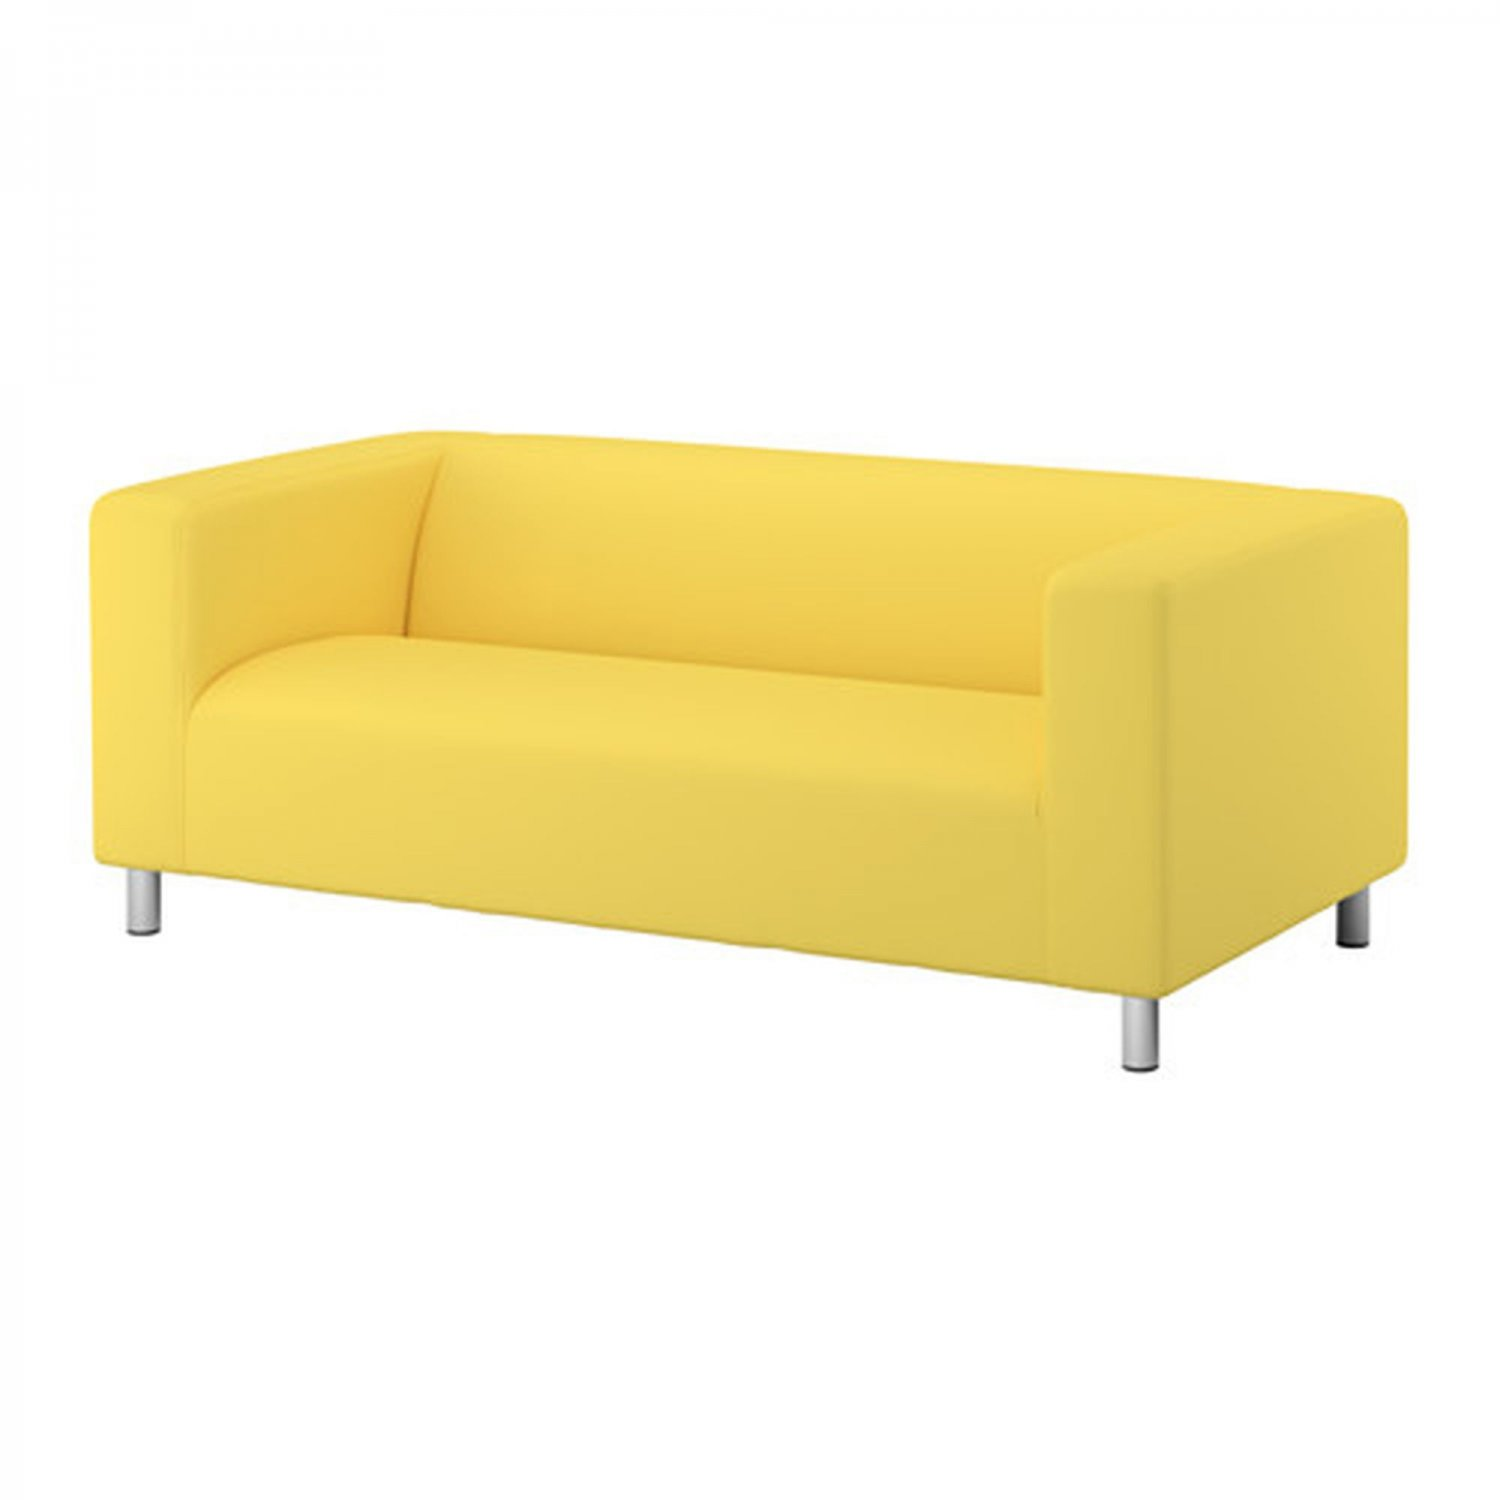 Ikea klippan loveseat sofa slipcover cover vissle yellow Loveseat slipcover